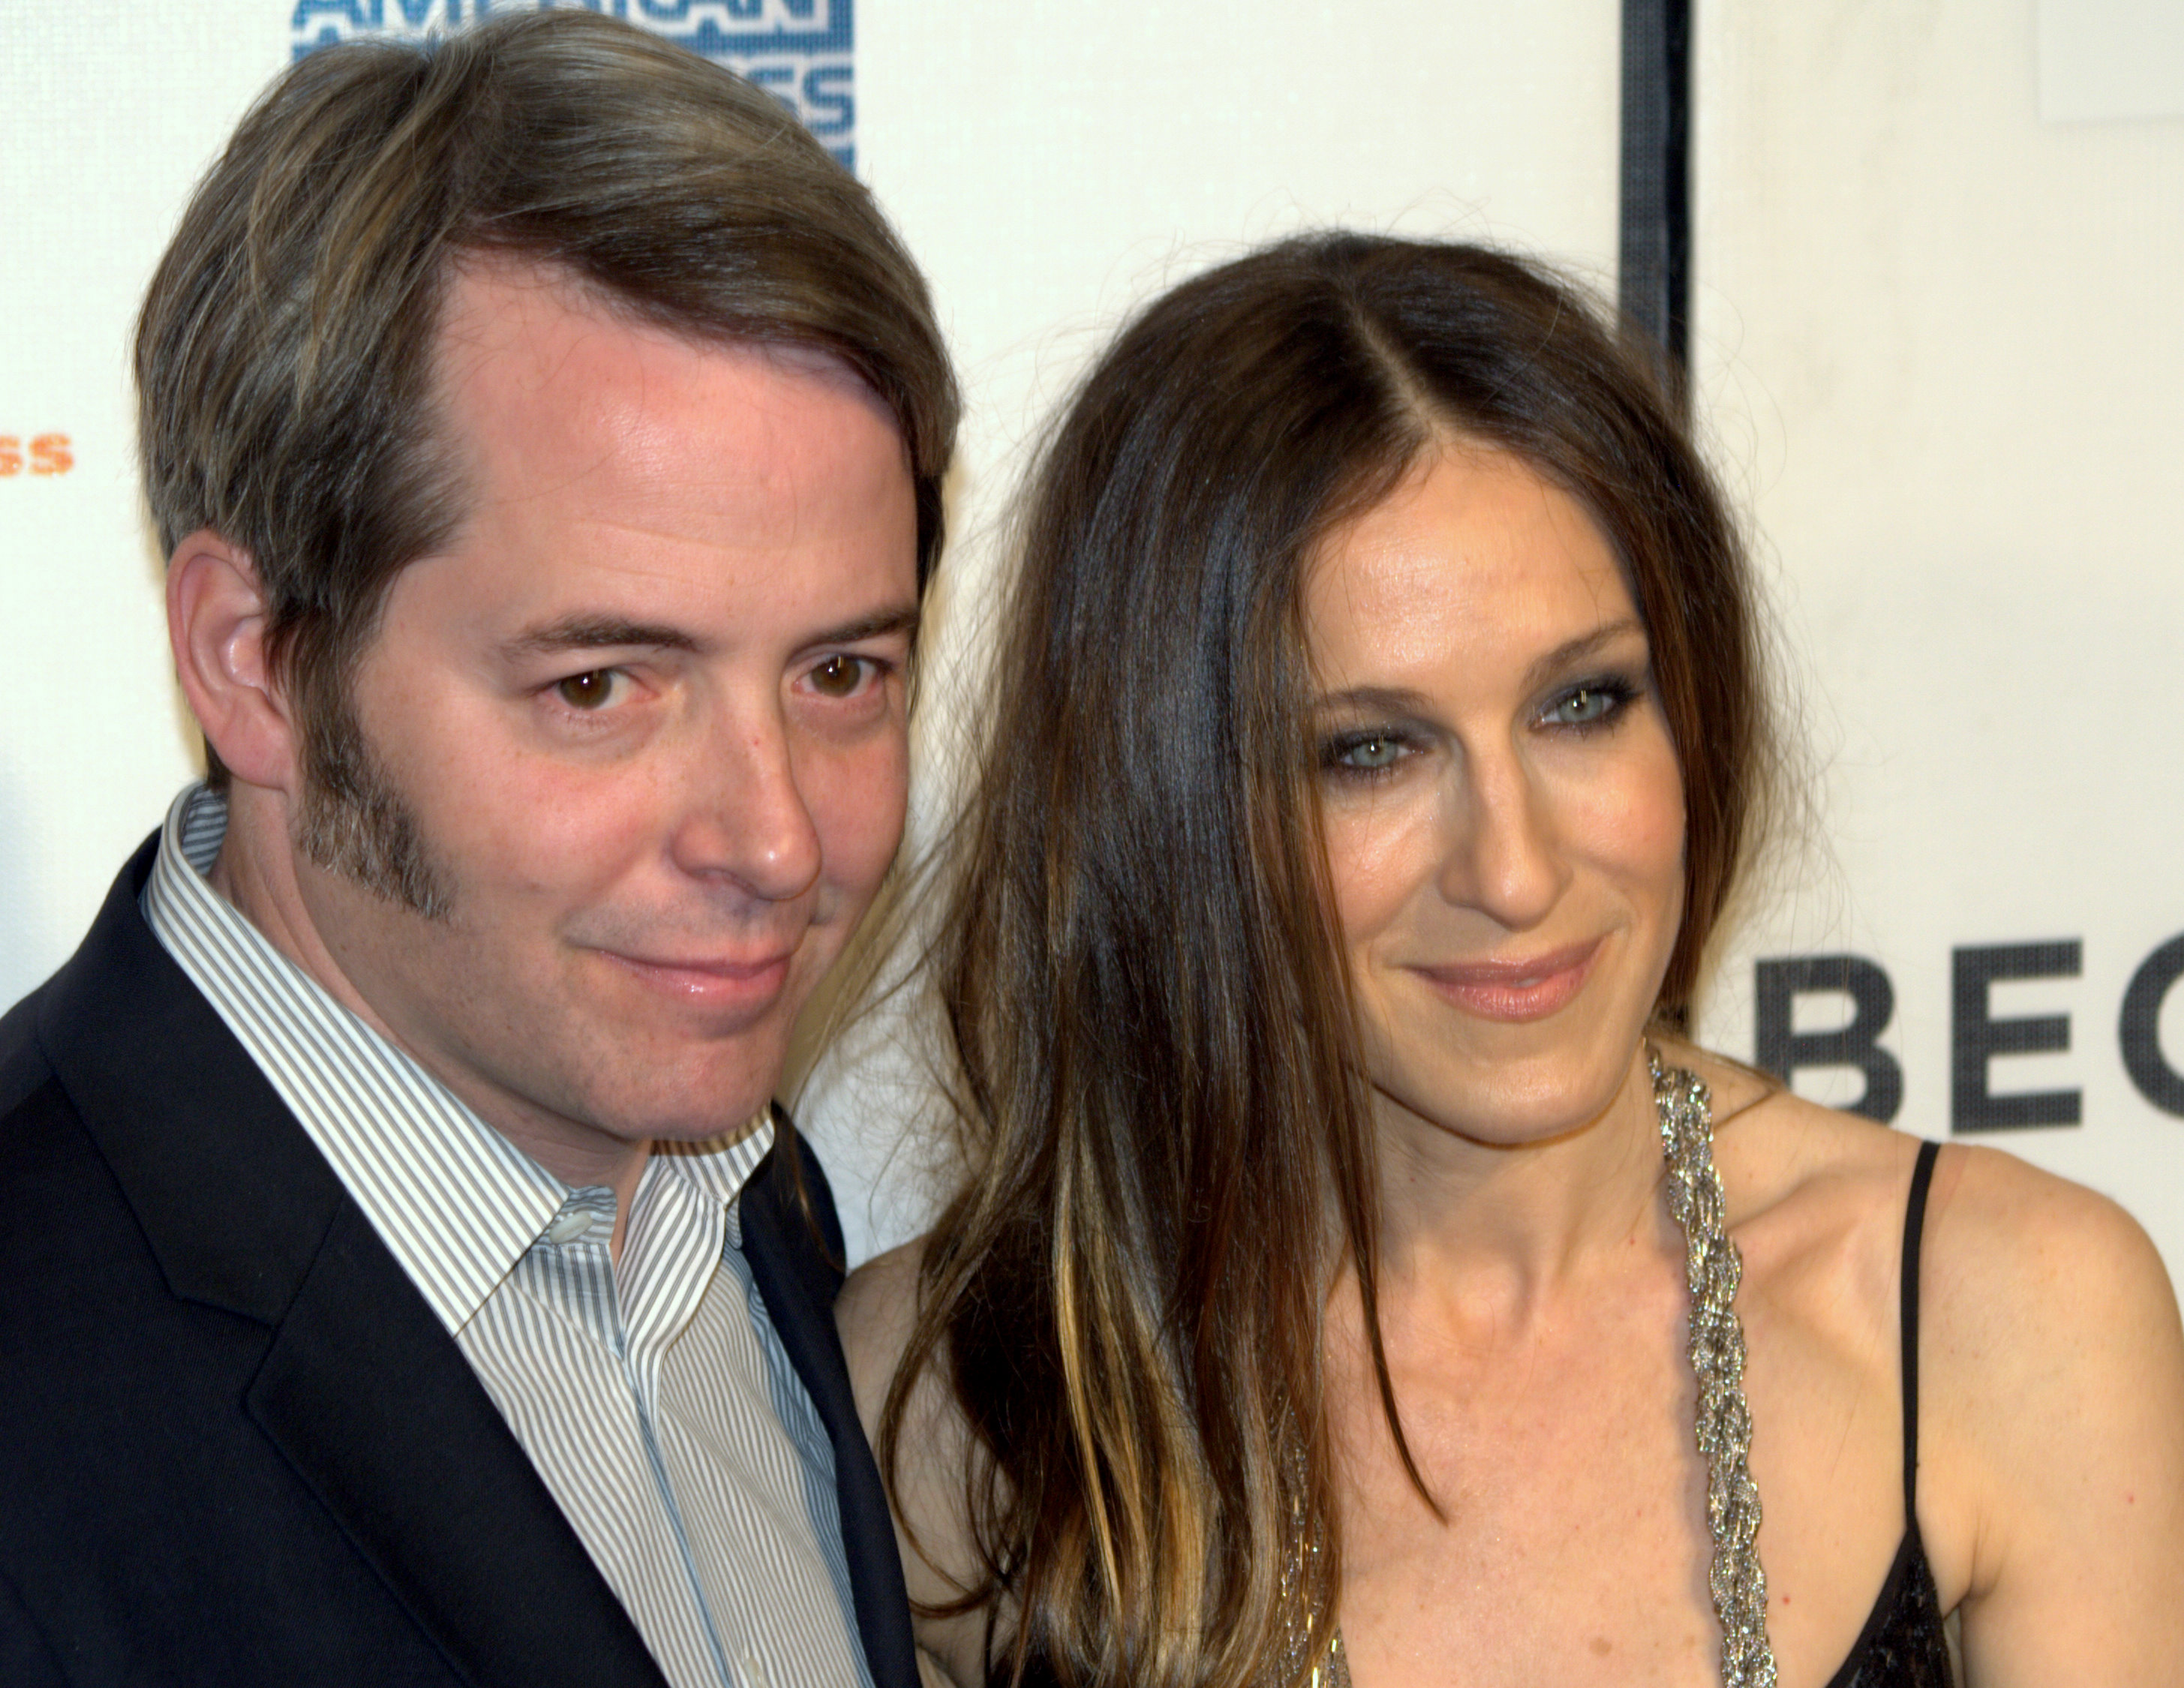 Sarah Jessica Parker and Matthew Broderick (Both Aries)